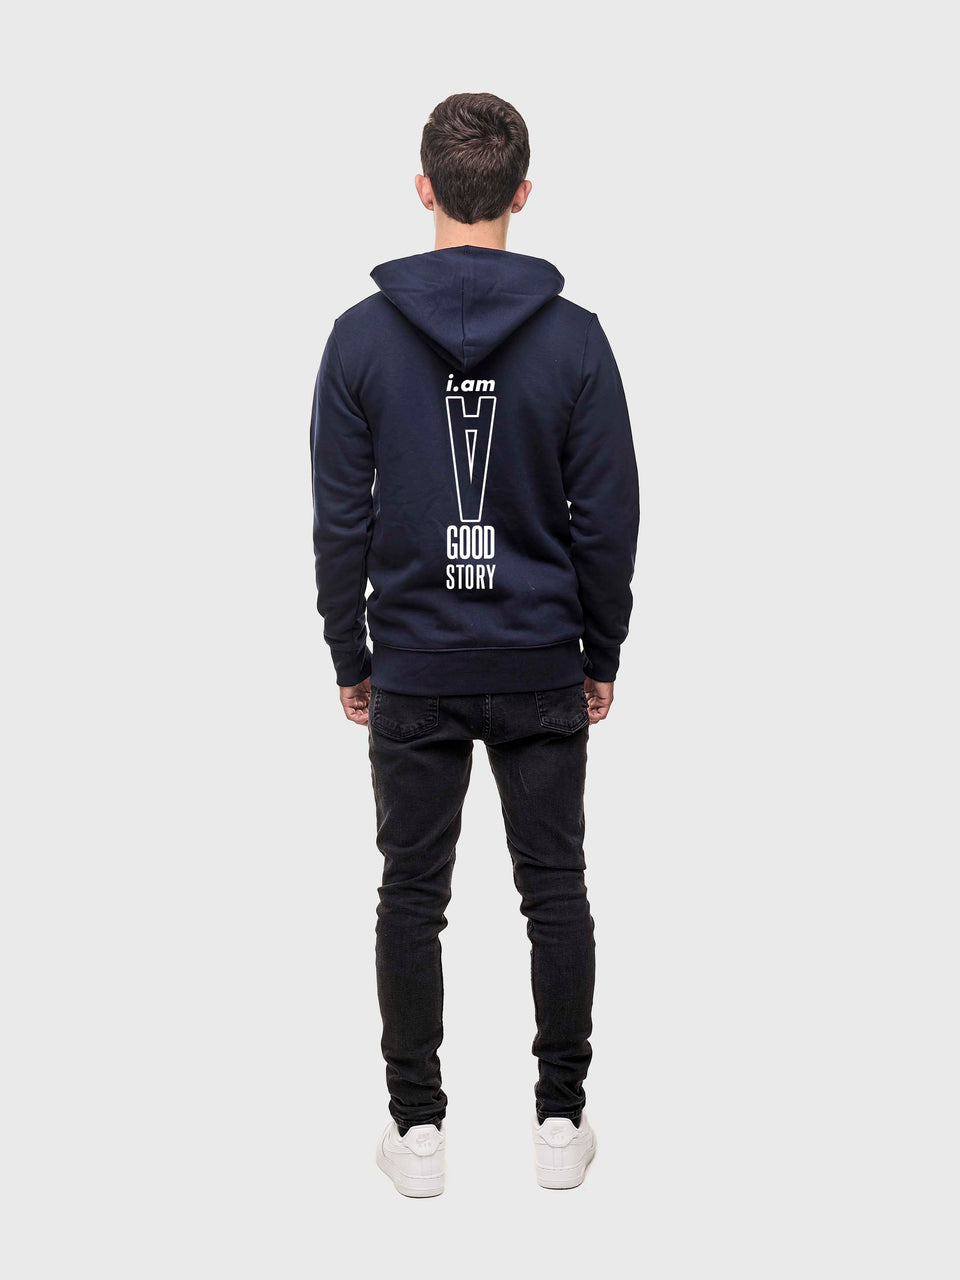 Good story - Navy - Unisex pull over hoodie